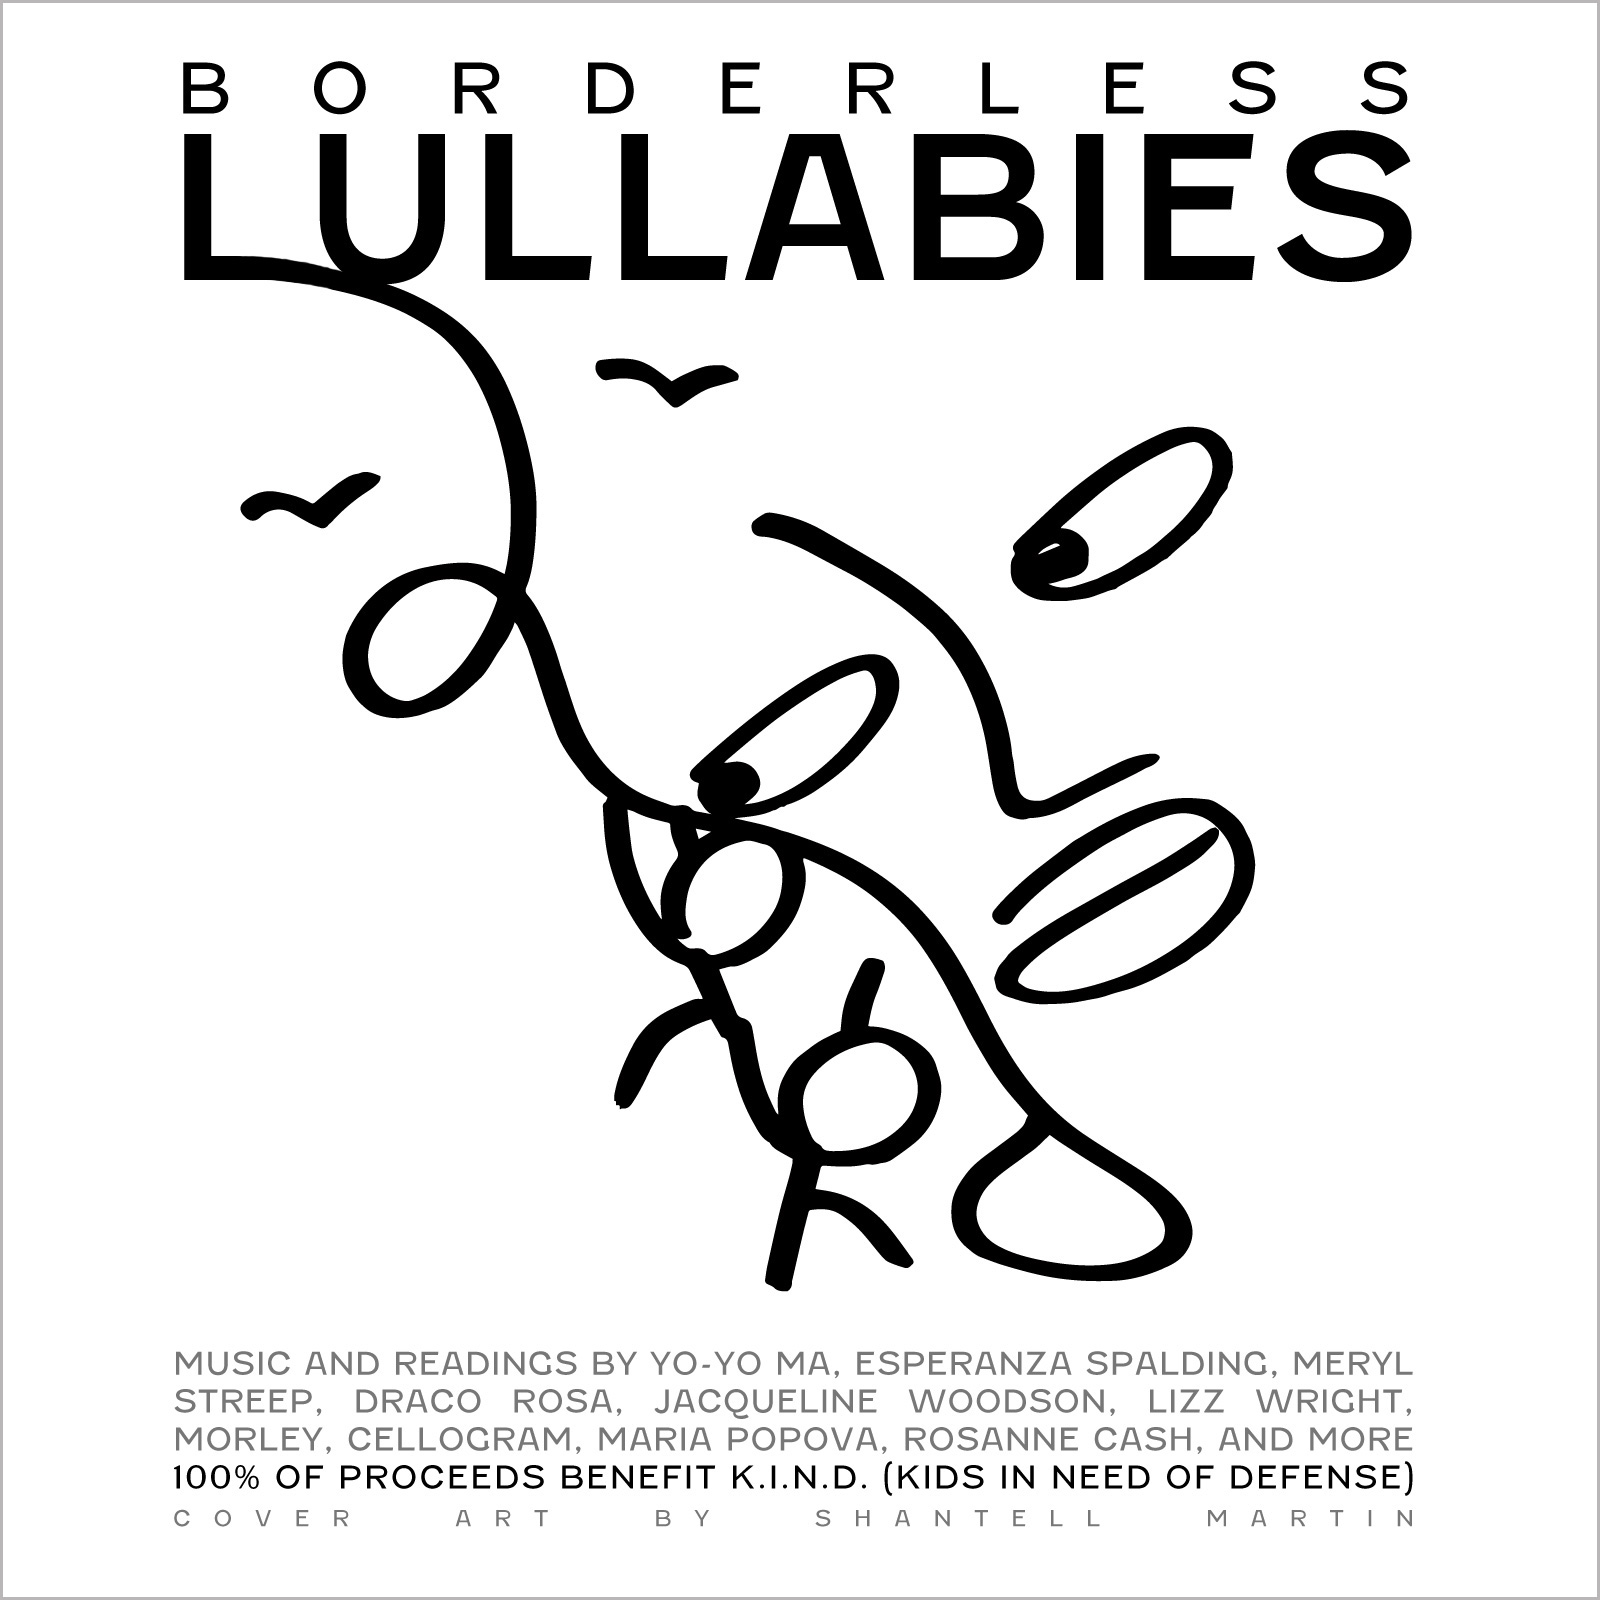 Borderless Lullabies: Musicians and Authors in Defense of Refugee Children